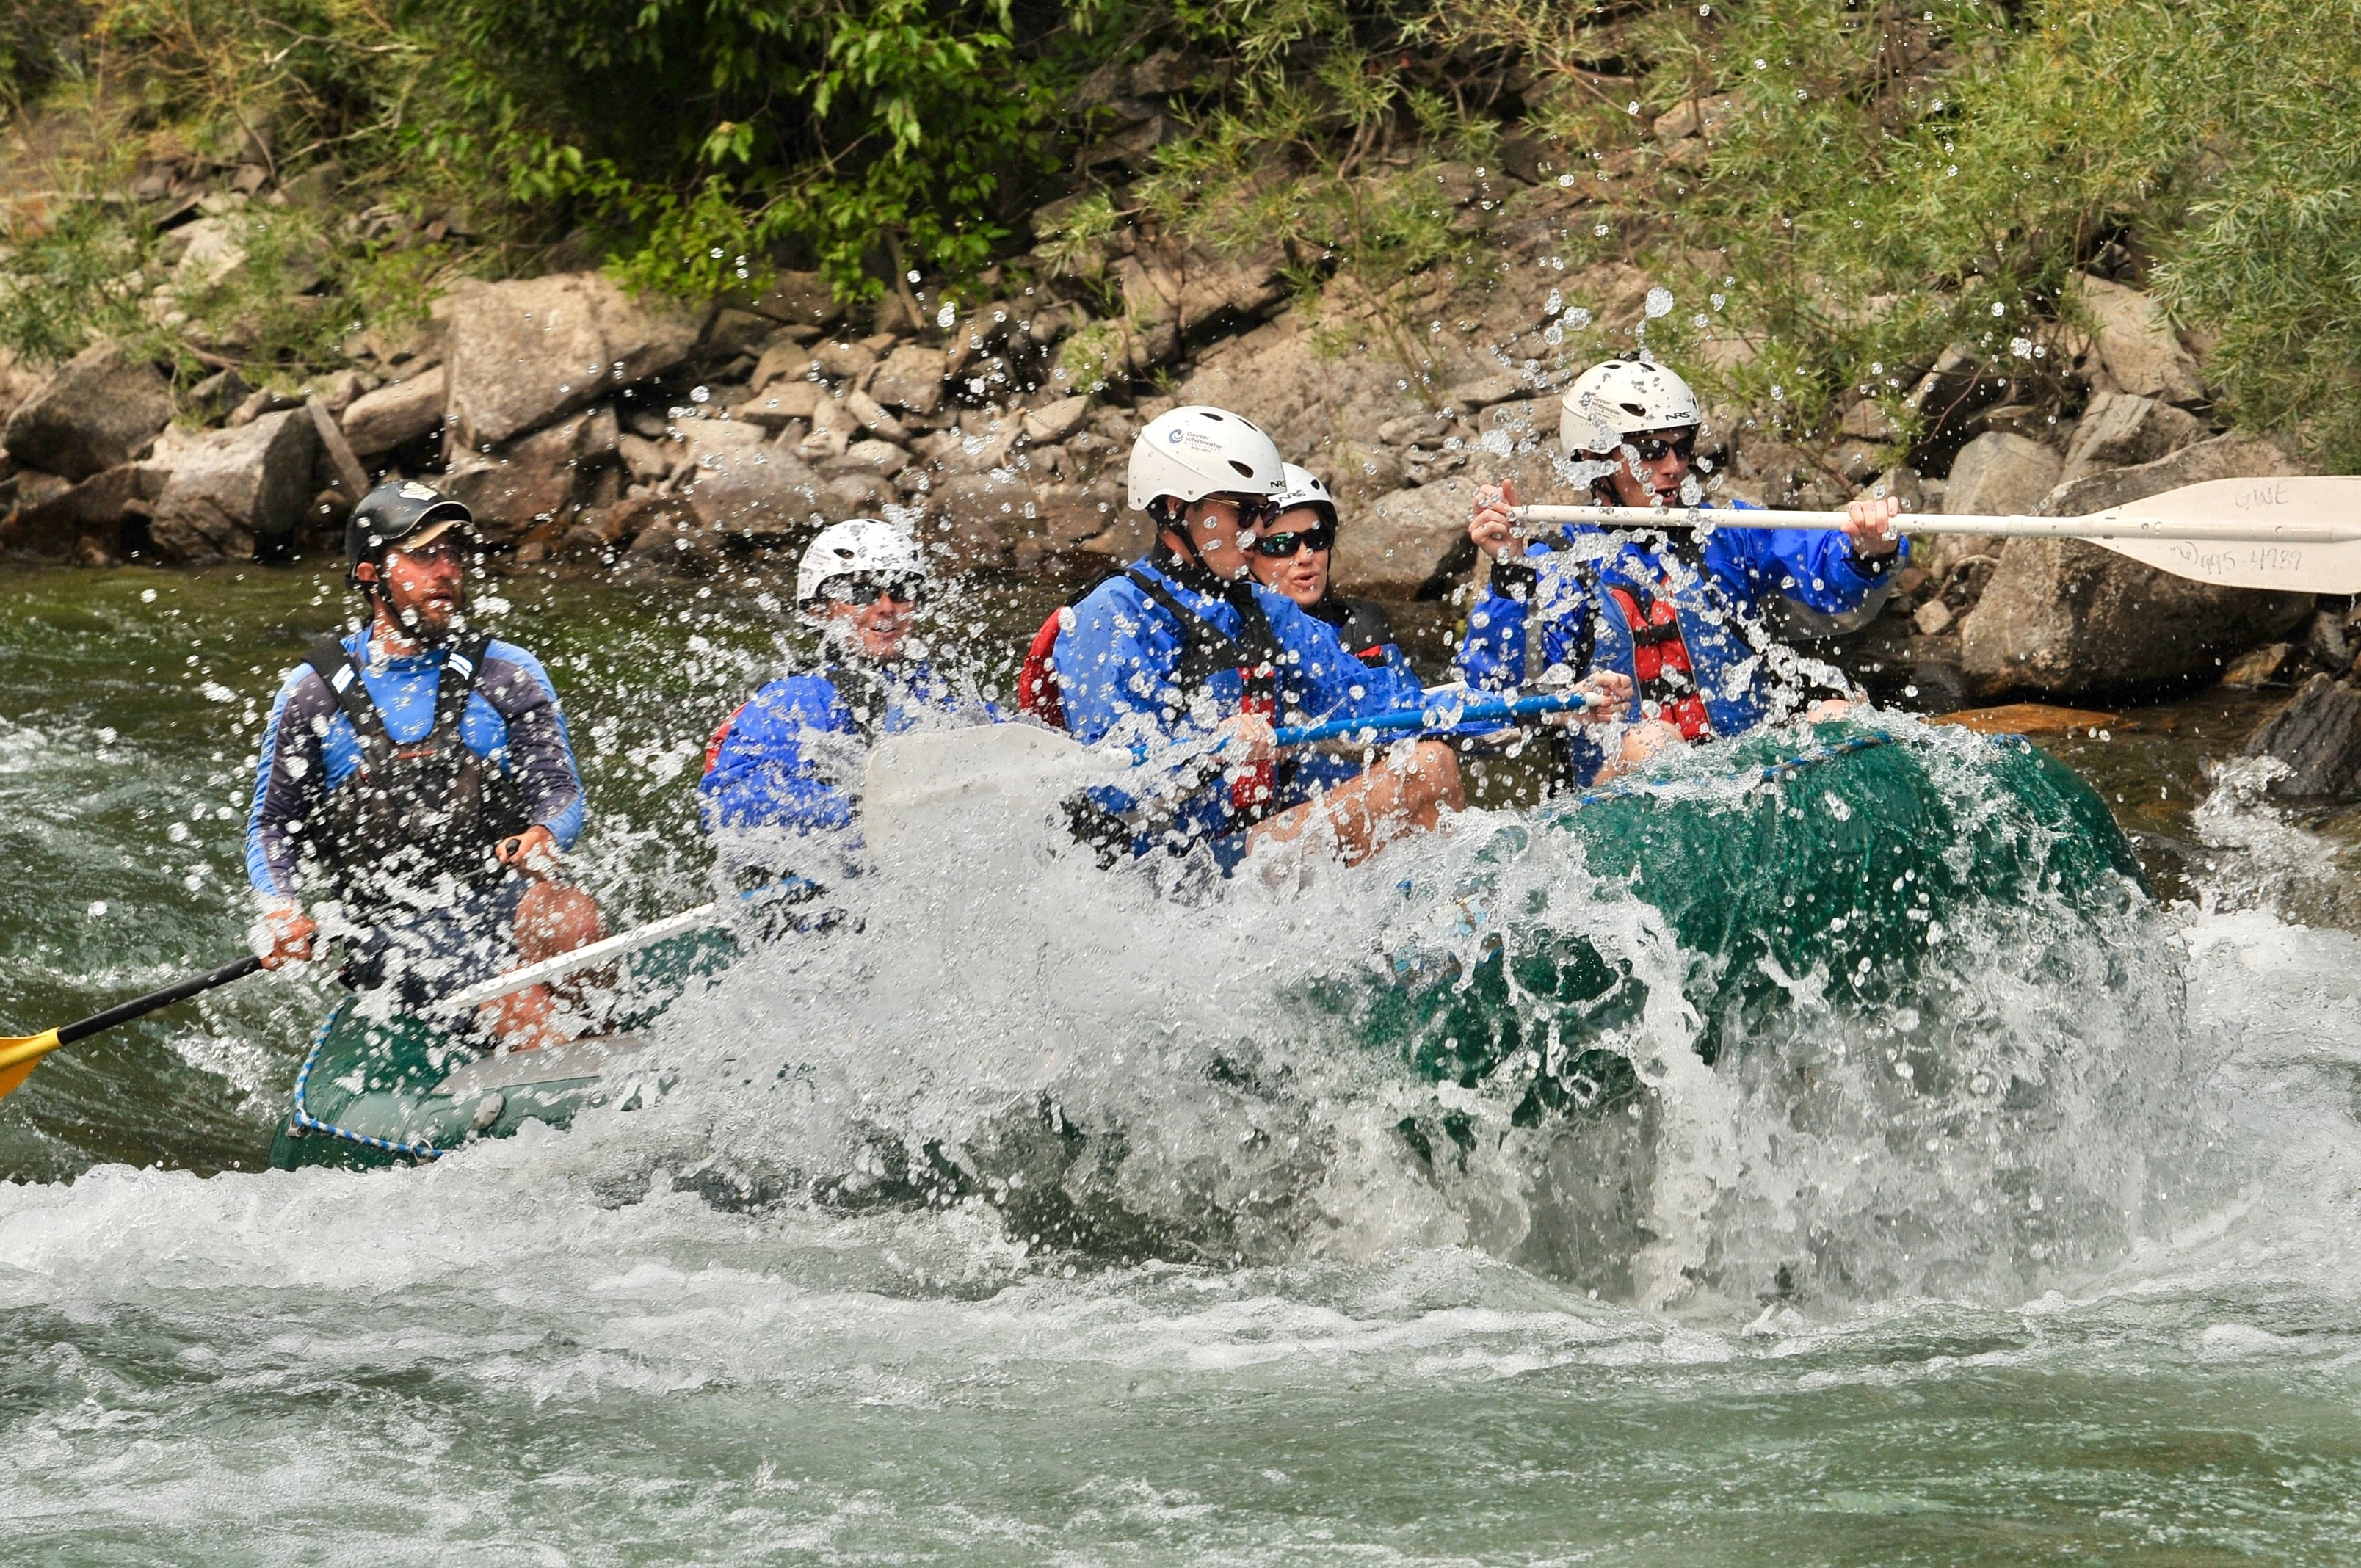 Rafters getting splashed on a rafting trip.